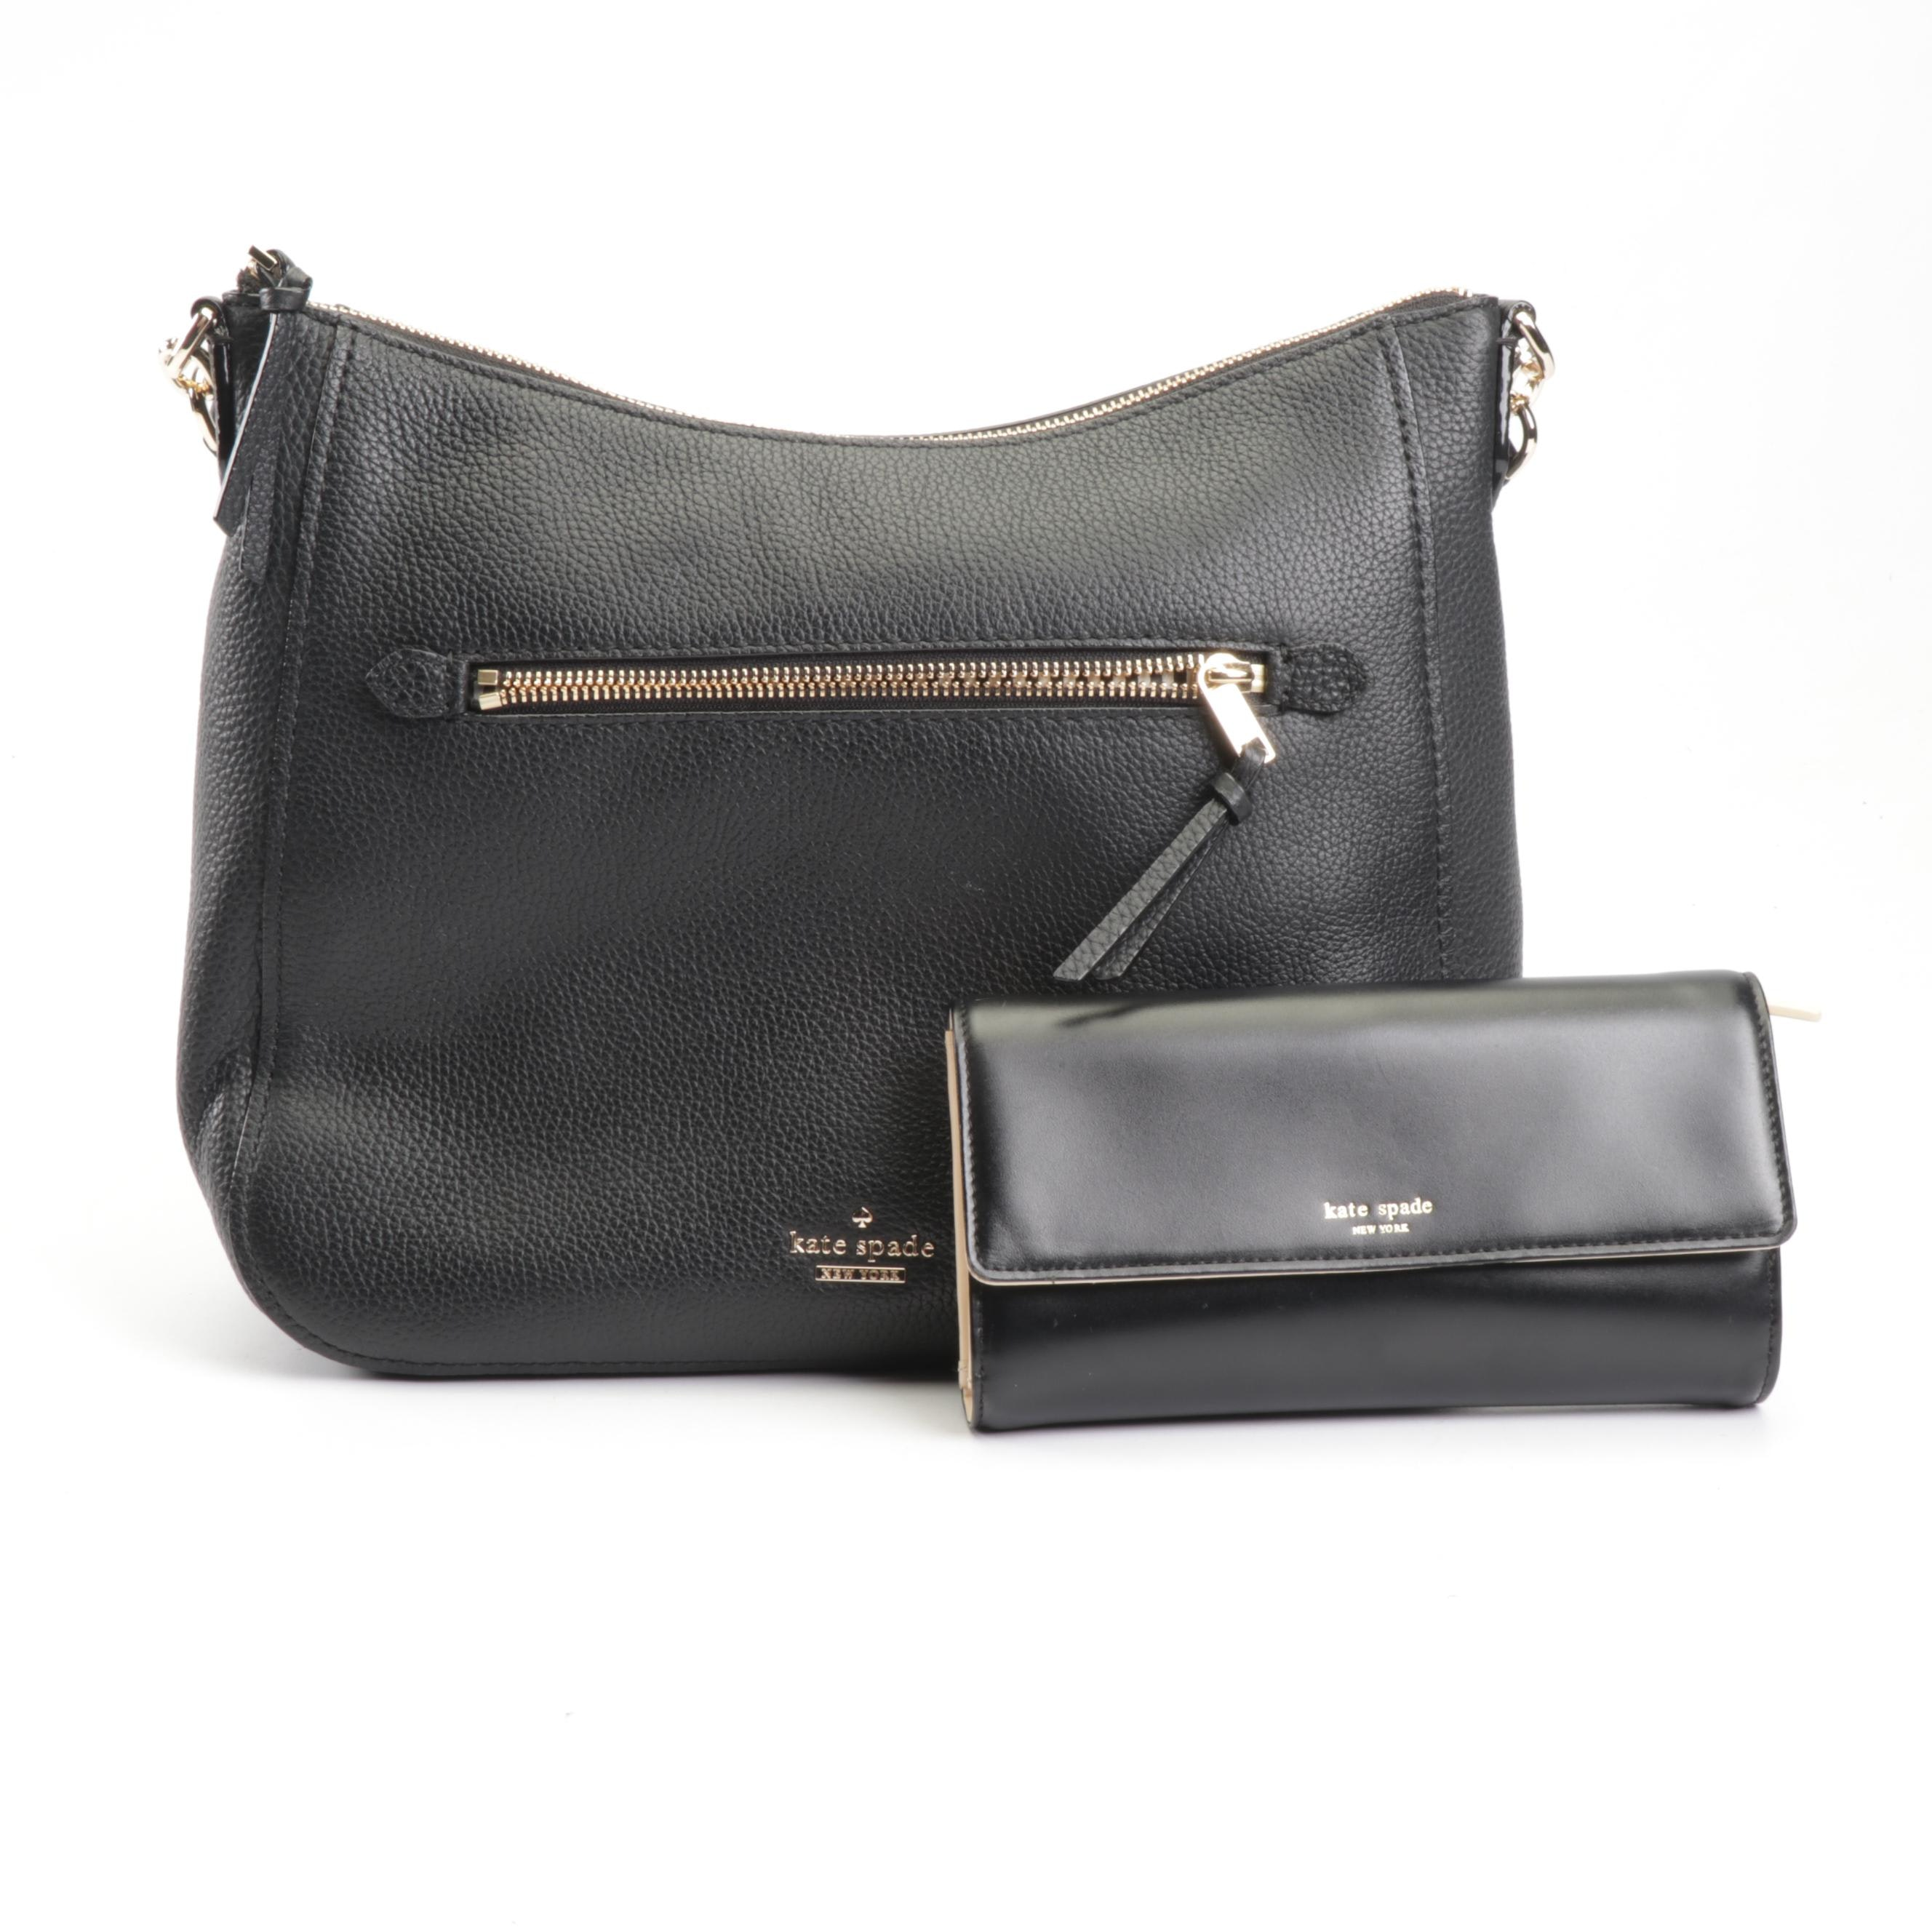 Kate Spade New York Black Leather Bag and Wallet